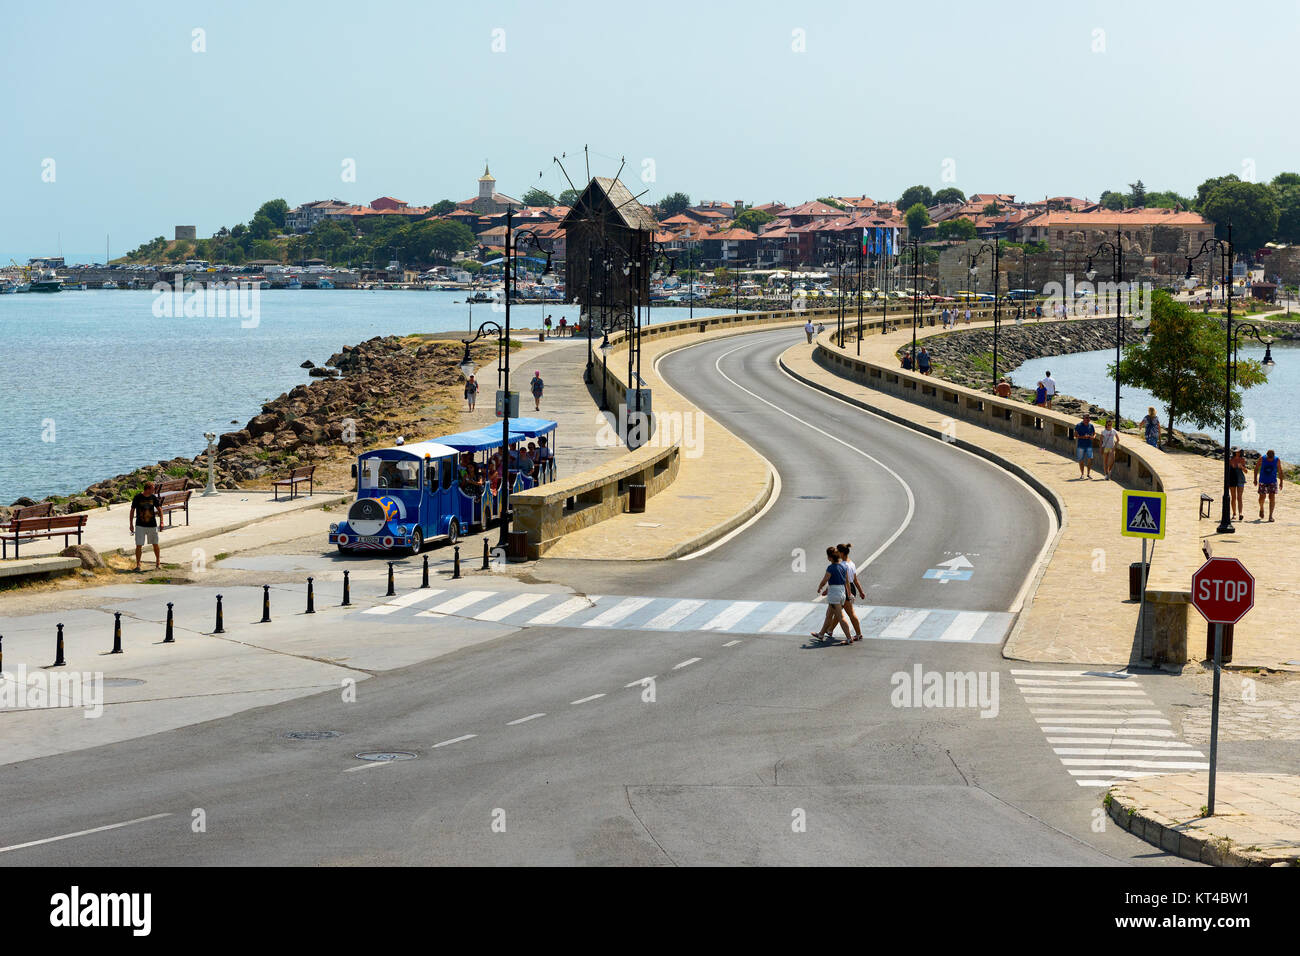 Coastal road and old wooden windmill on the ihtmus of the ancient town of Nesebar, Bulgaria - Stock Image